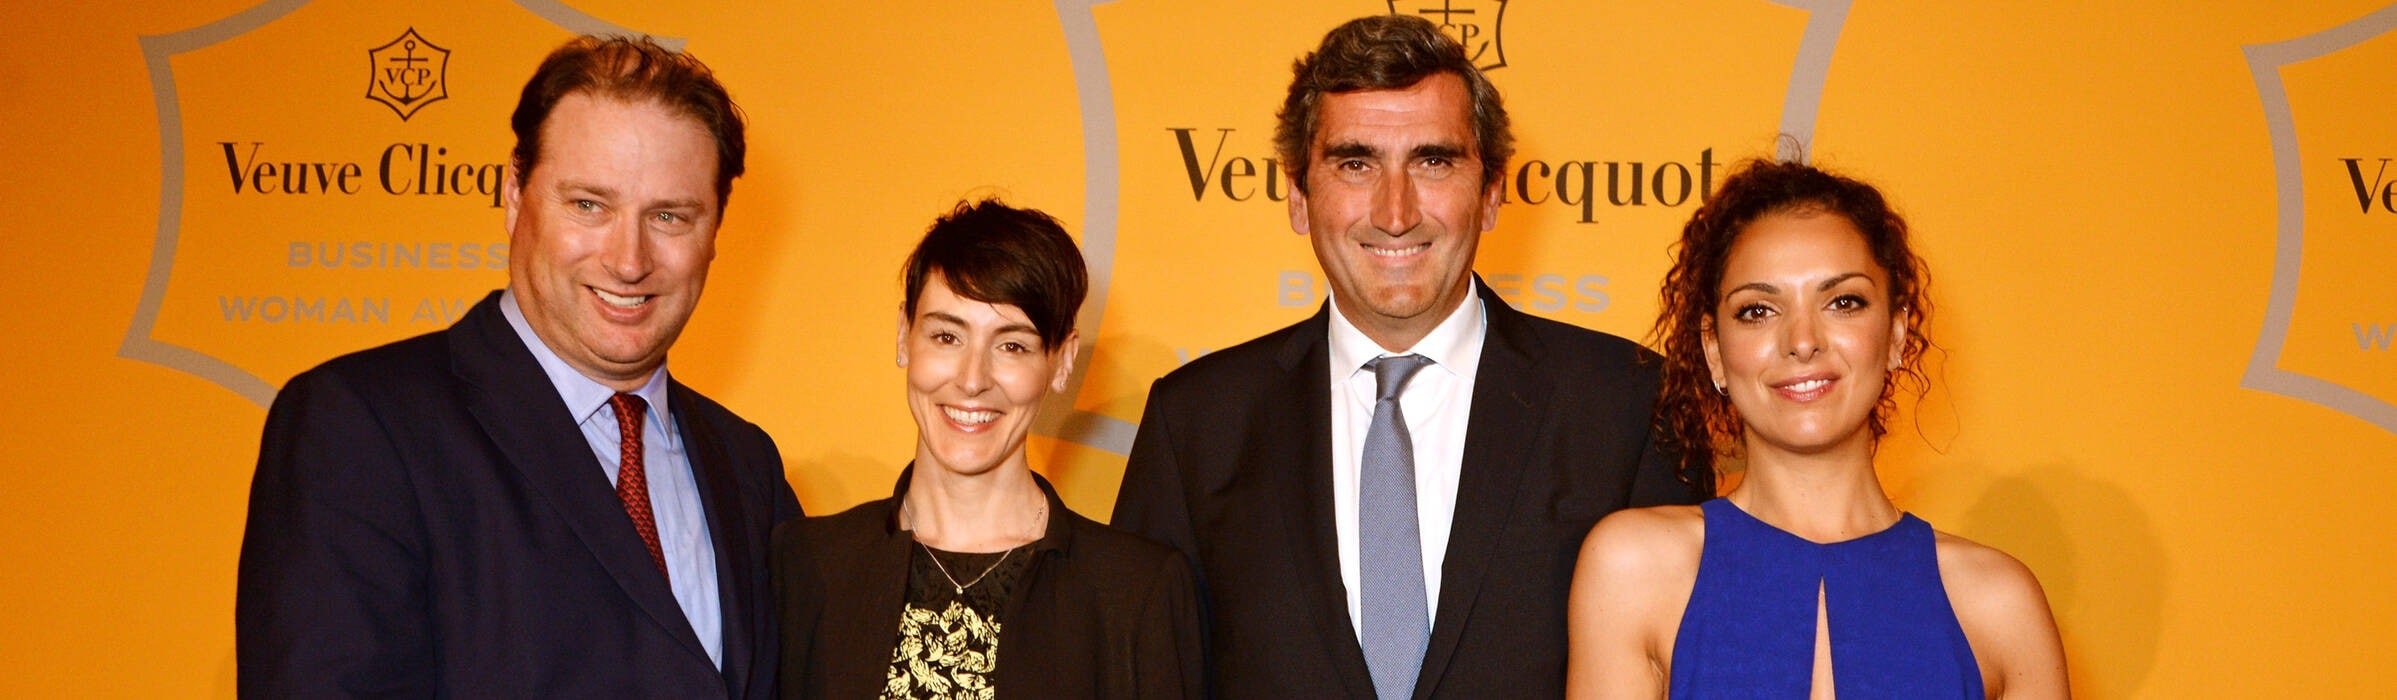 Veuve Clicquot - BUSINESS WOMAN AWARDS